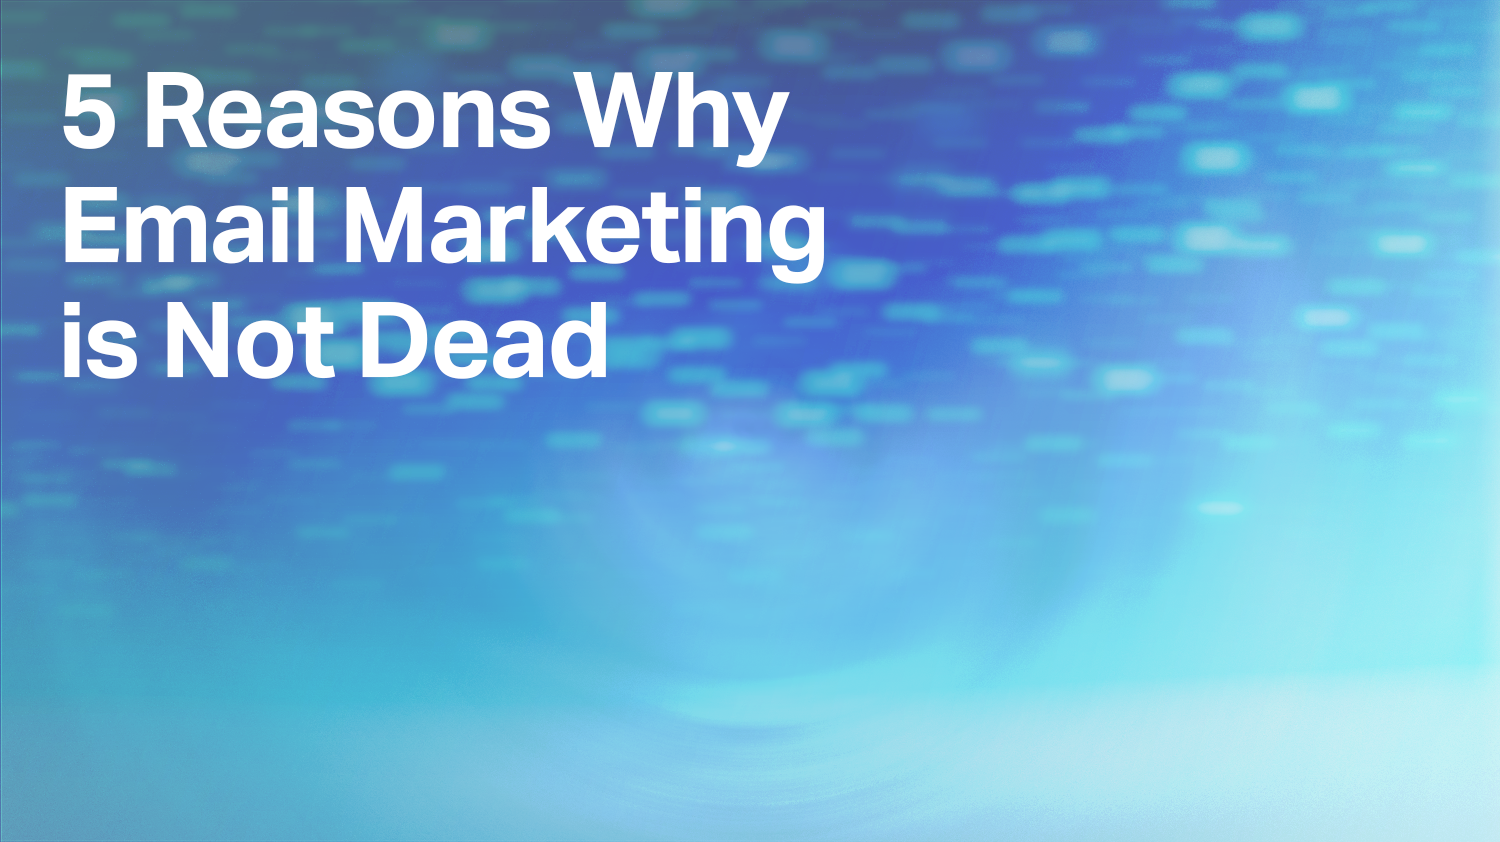 5 Reasons Why Email Marketing is Not Dead